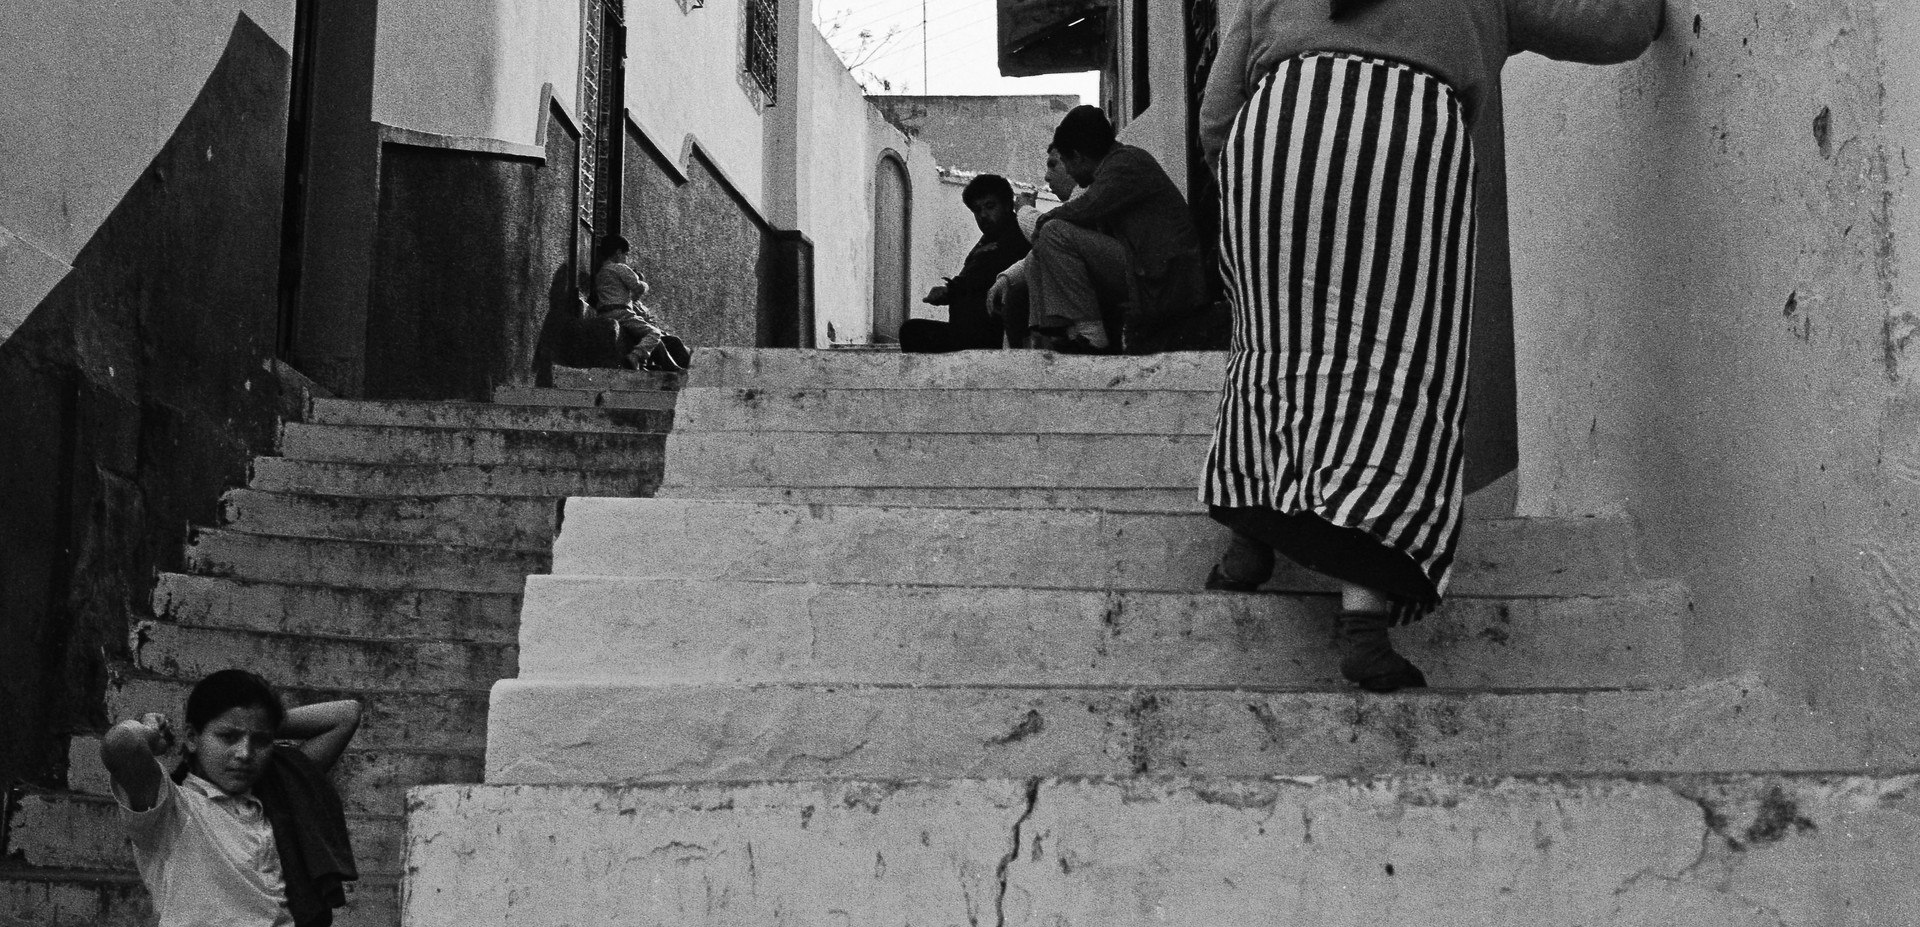 Locals_Tangier, Morocco 1986